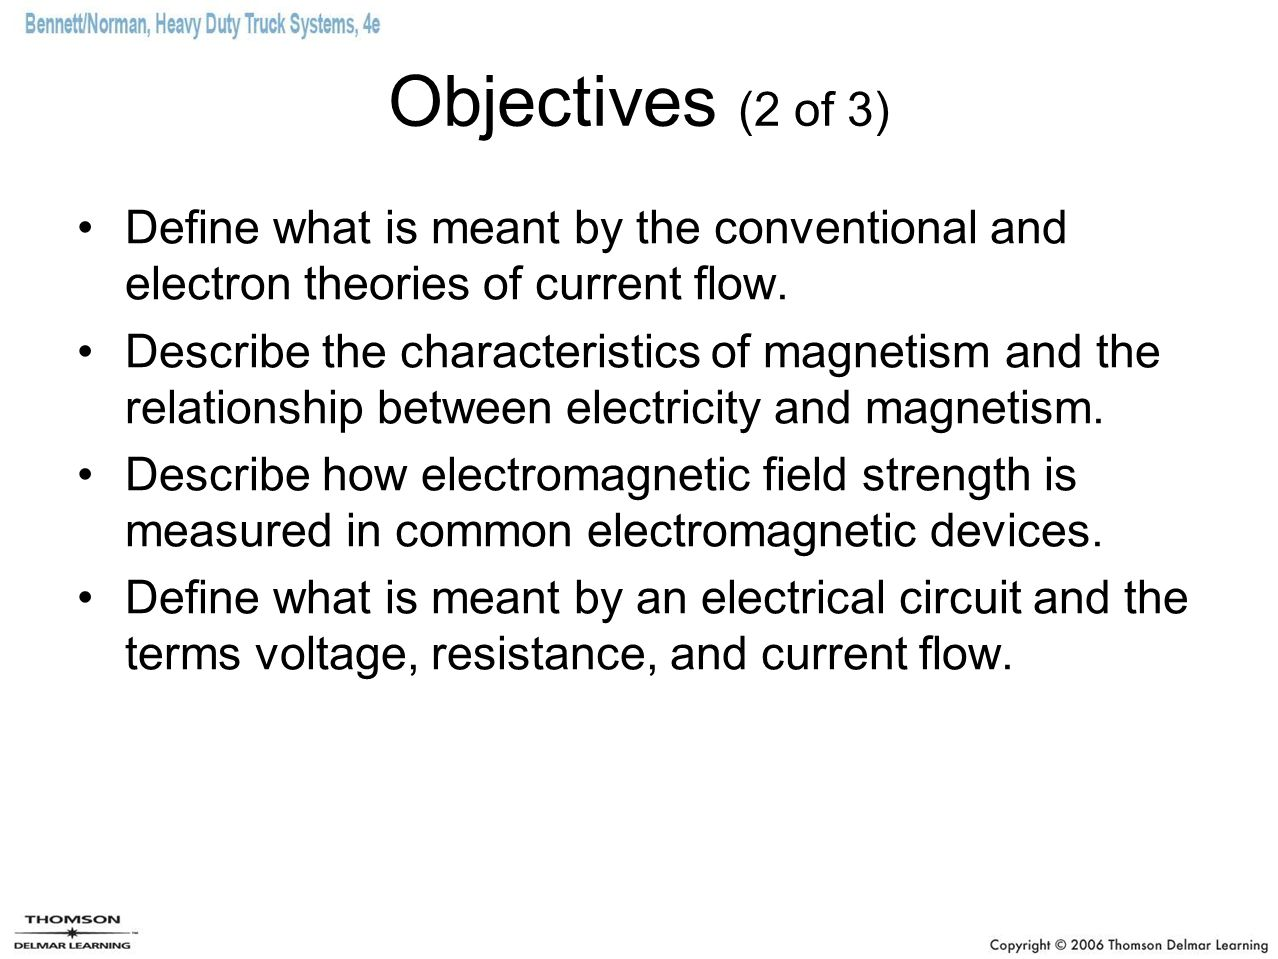 what is the relationship between electron and magnetism